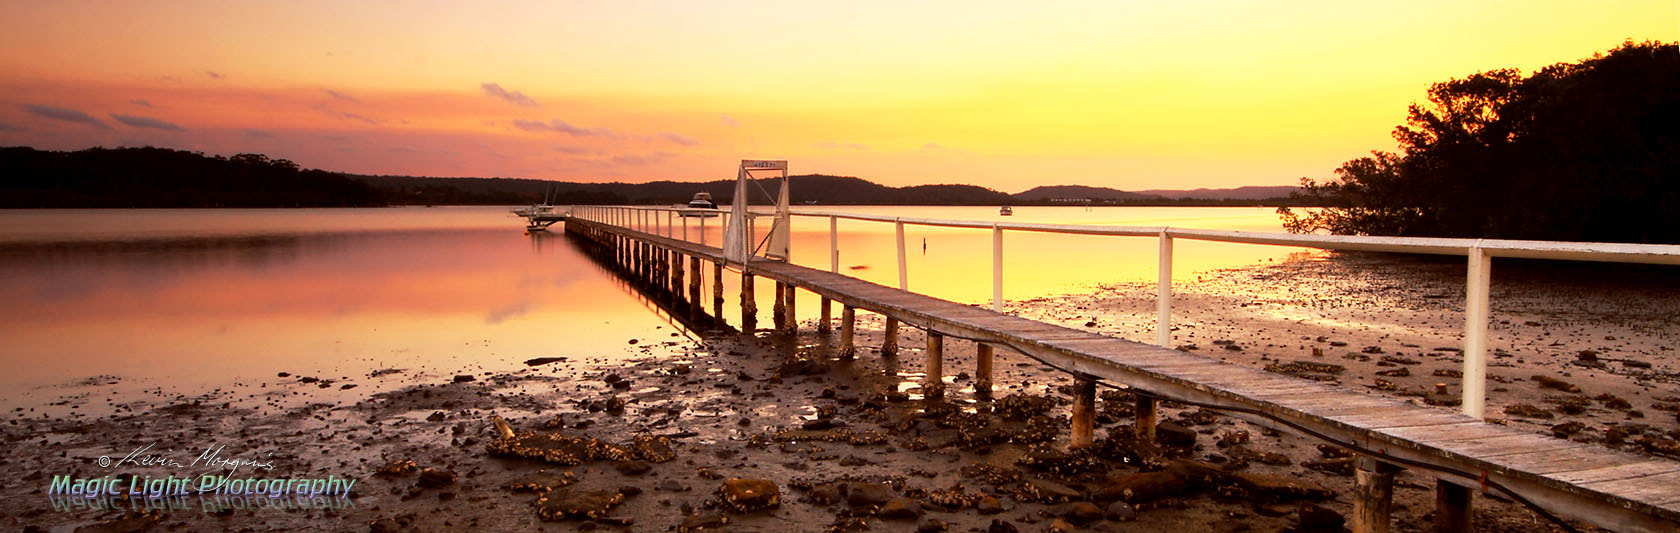 Photograph Kincumber Jetty at Sunset by Kevin Morgan on 500px